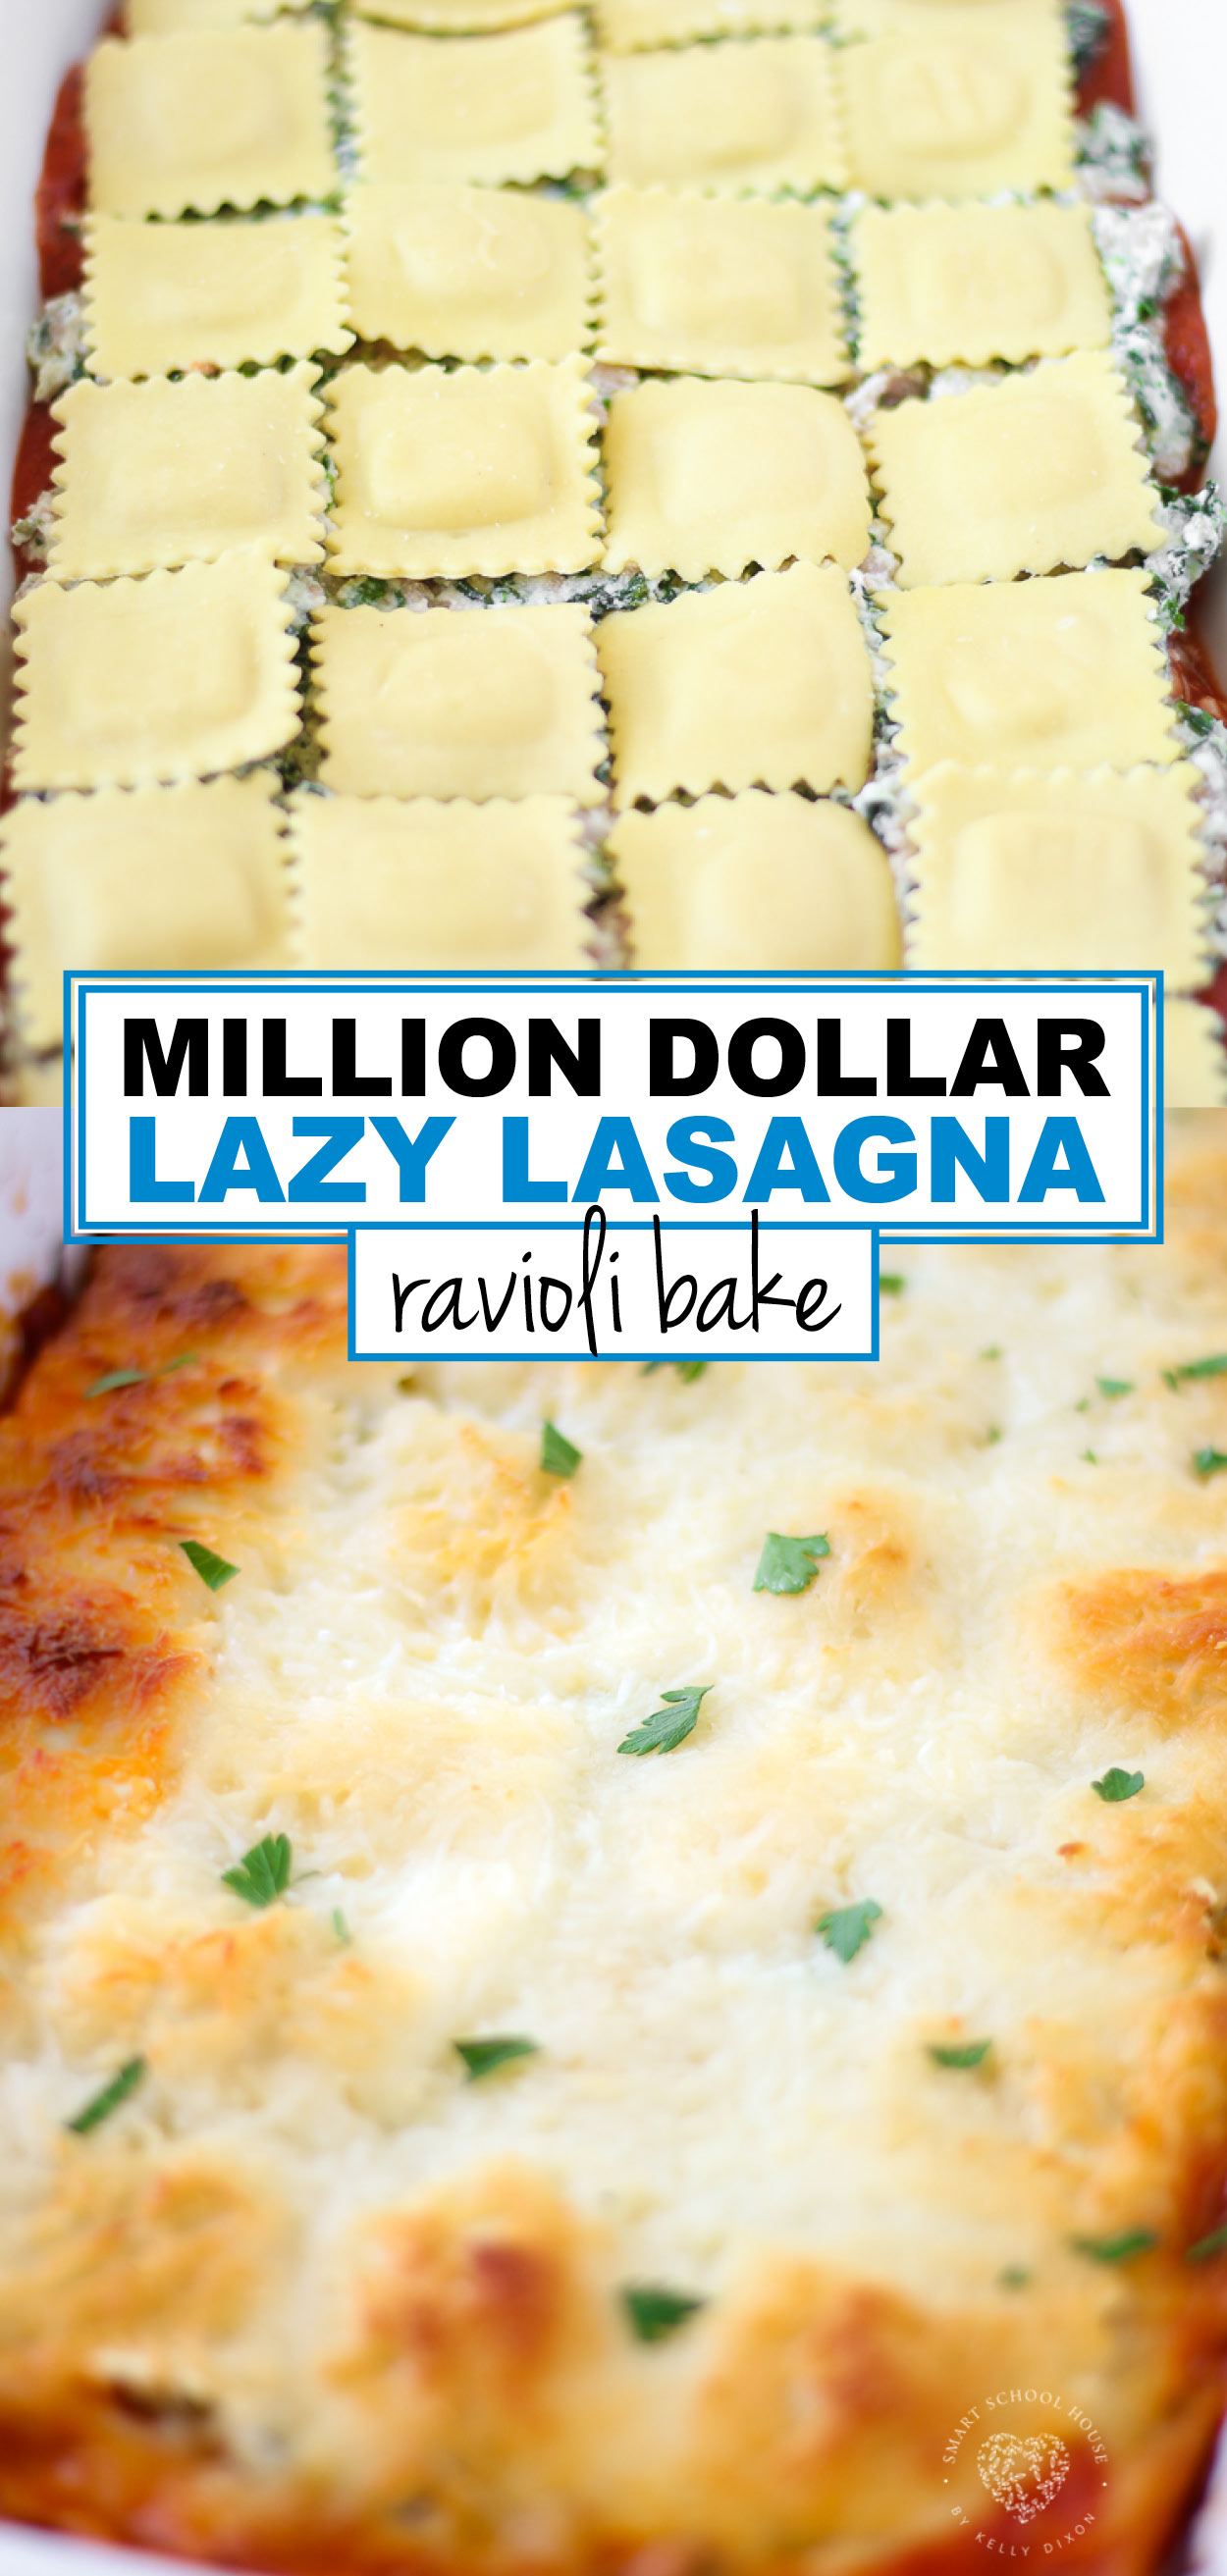 This layered ravioli bake is a cheesy crowd pleasing dinner that has just a few easy-to-find ingredients. In less than an hour, dinner is on the table.